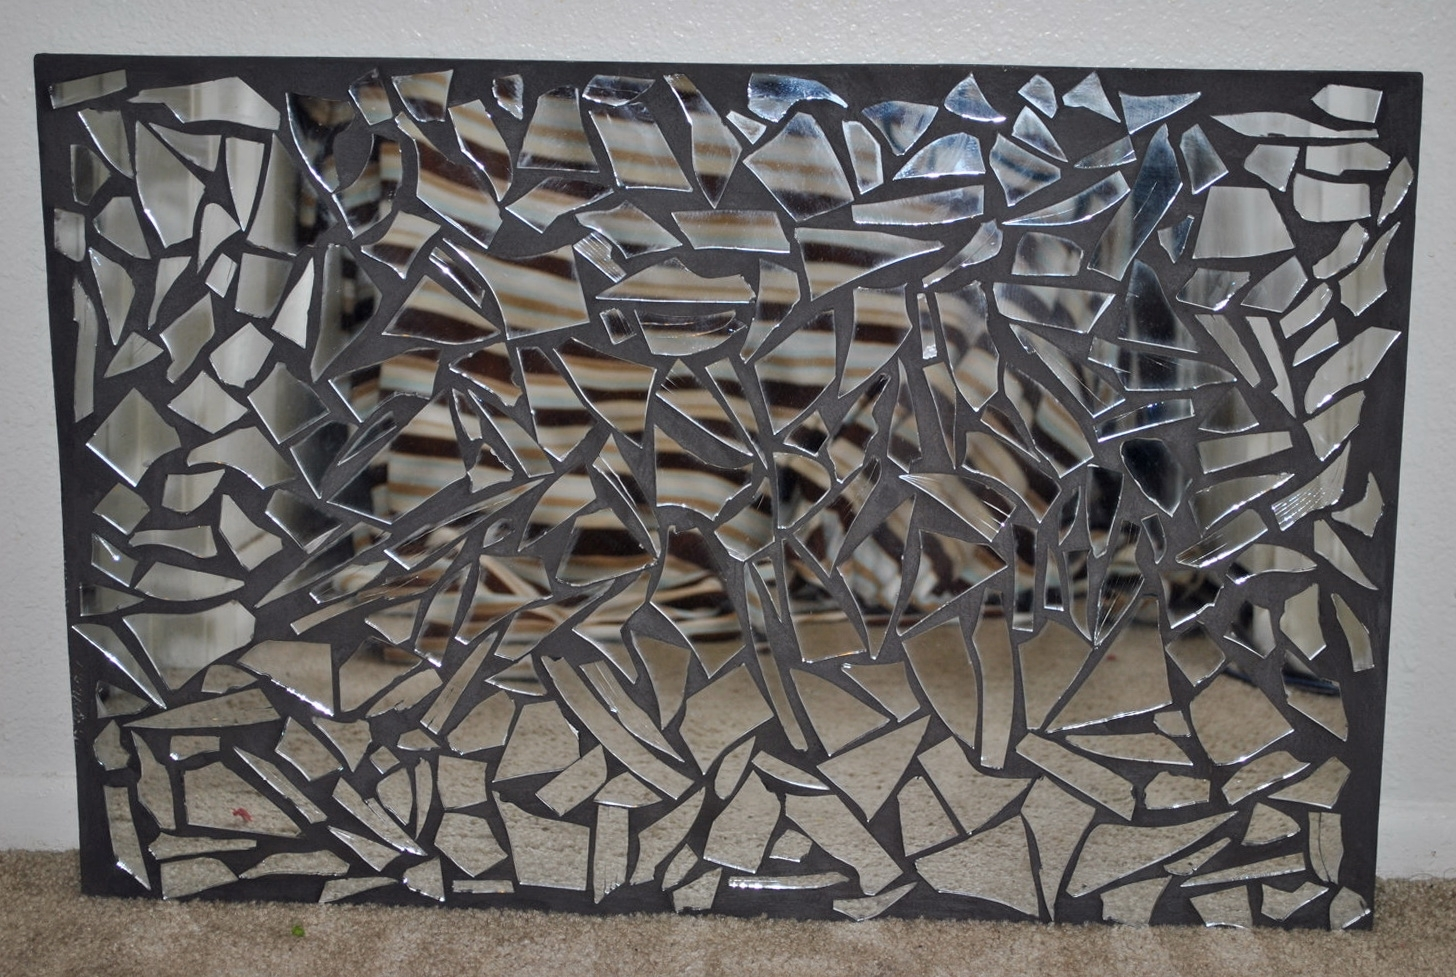 Most Recent Modern Mirrored Wall Art With Regard To Wall Art Designs: Mirrored Wall Art Mirrored Mosaic Wall Art Large (View 7 of 15)